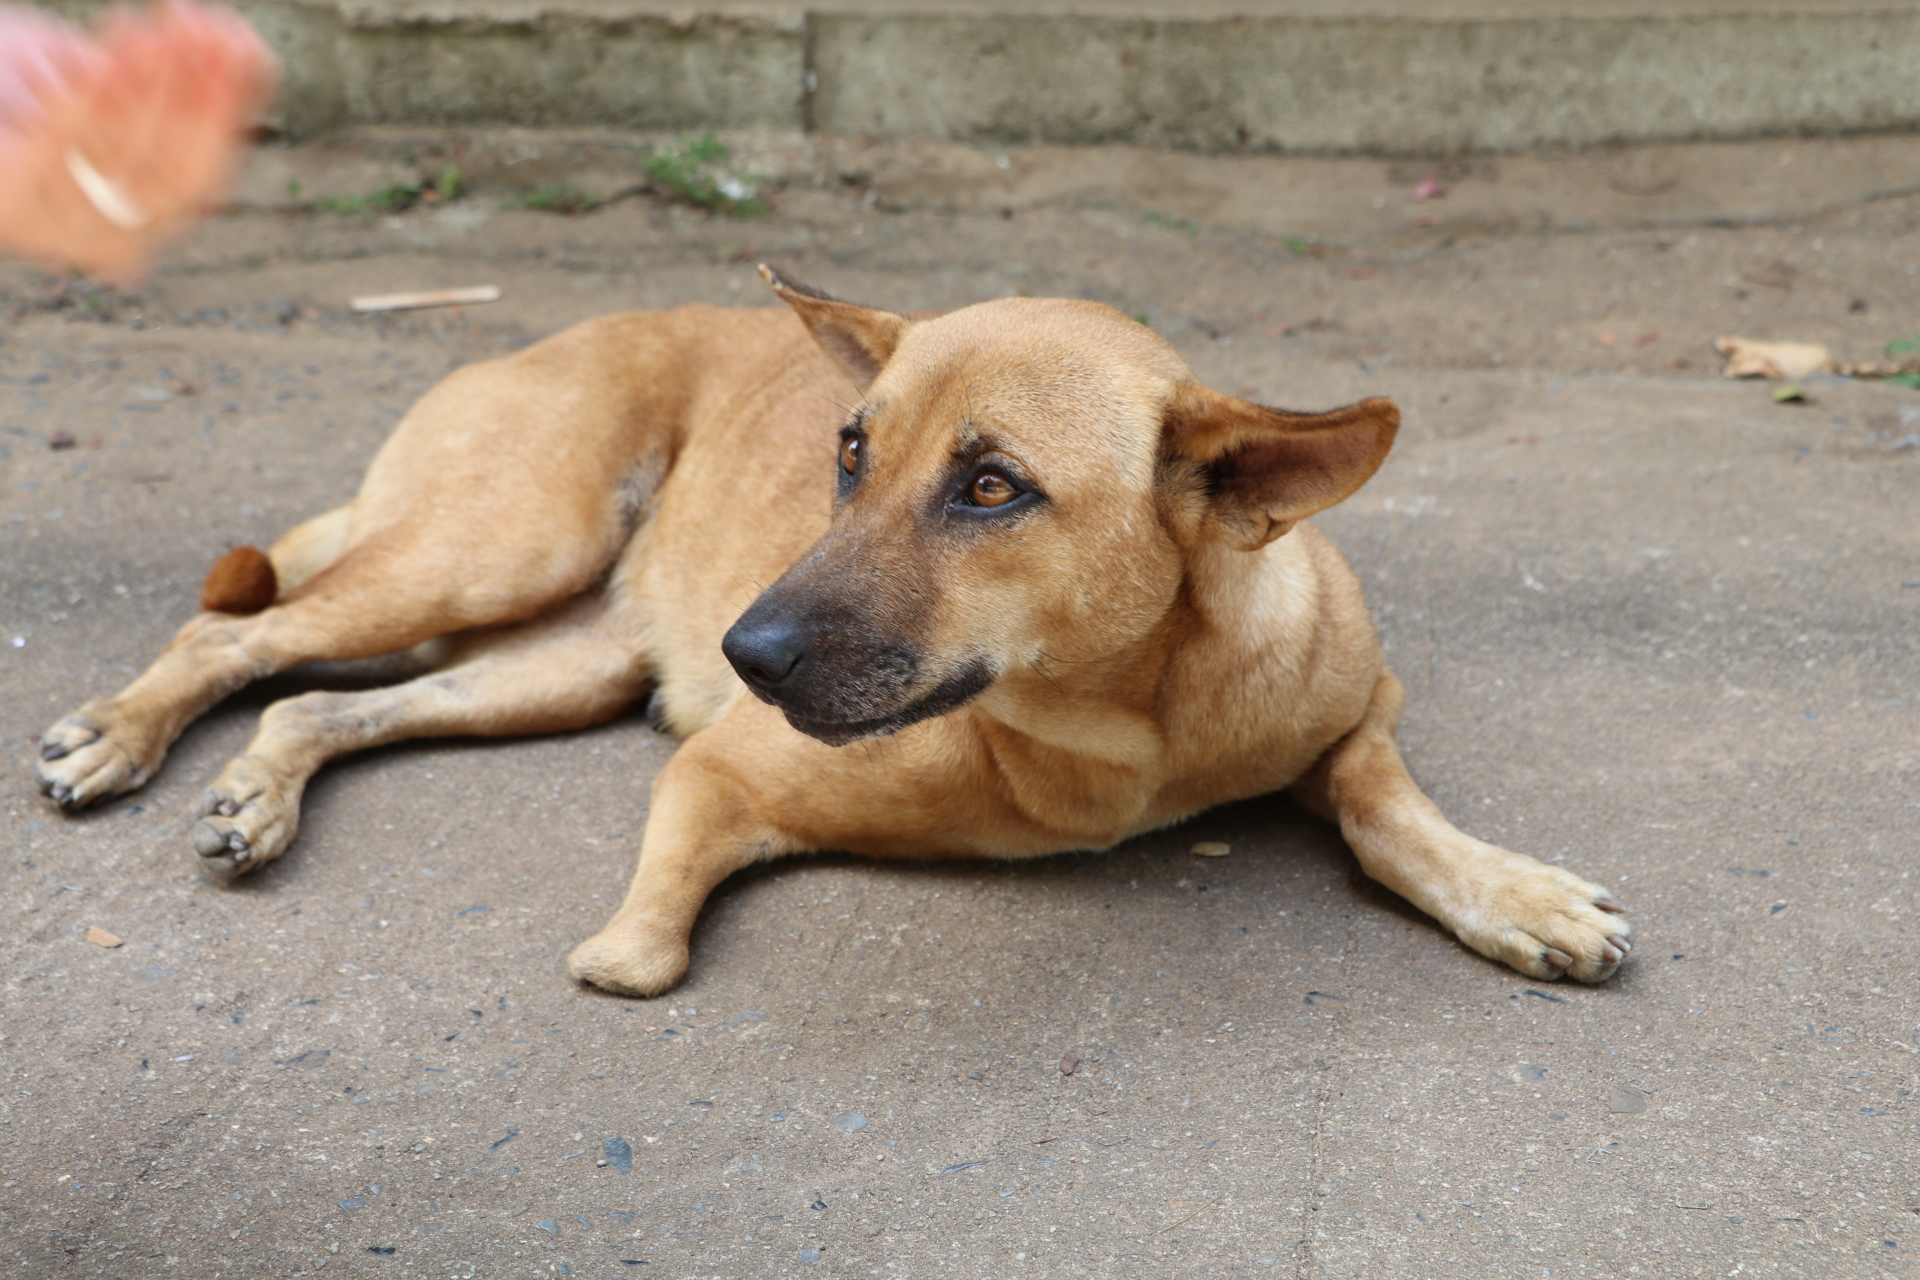 52ff29f27e75 3 Simple Ways To Help A Stray Dog Or Cat You See While Traveling ...